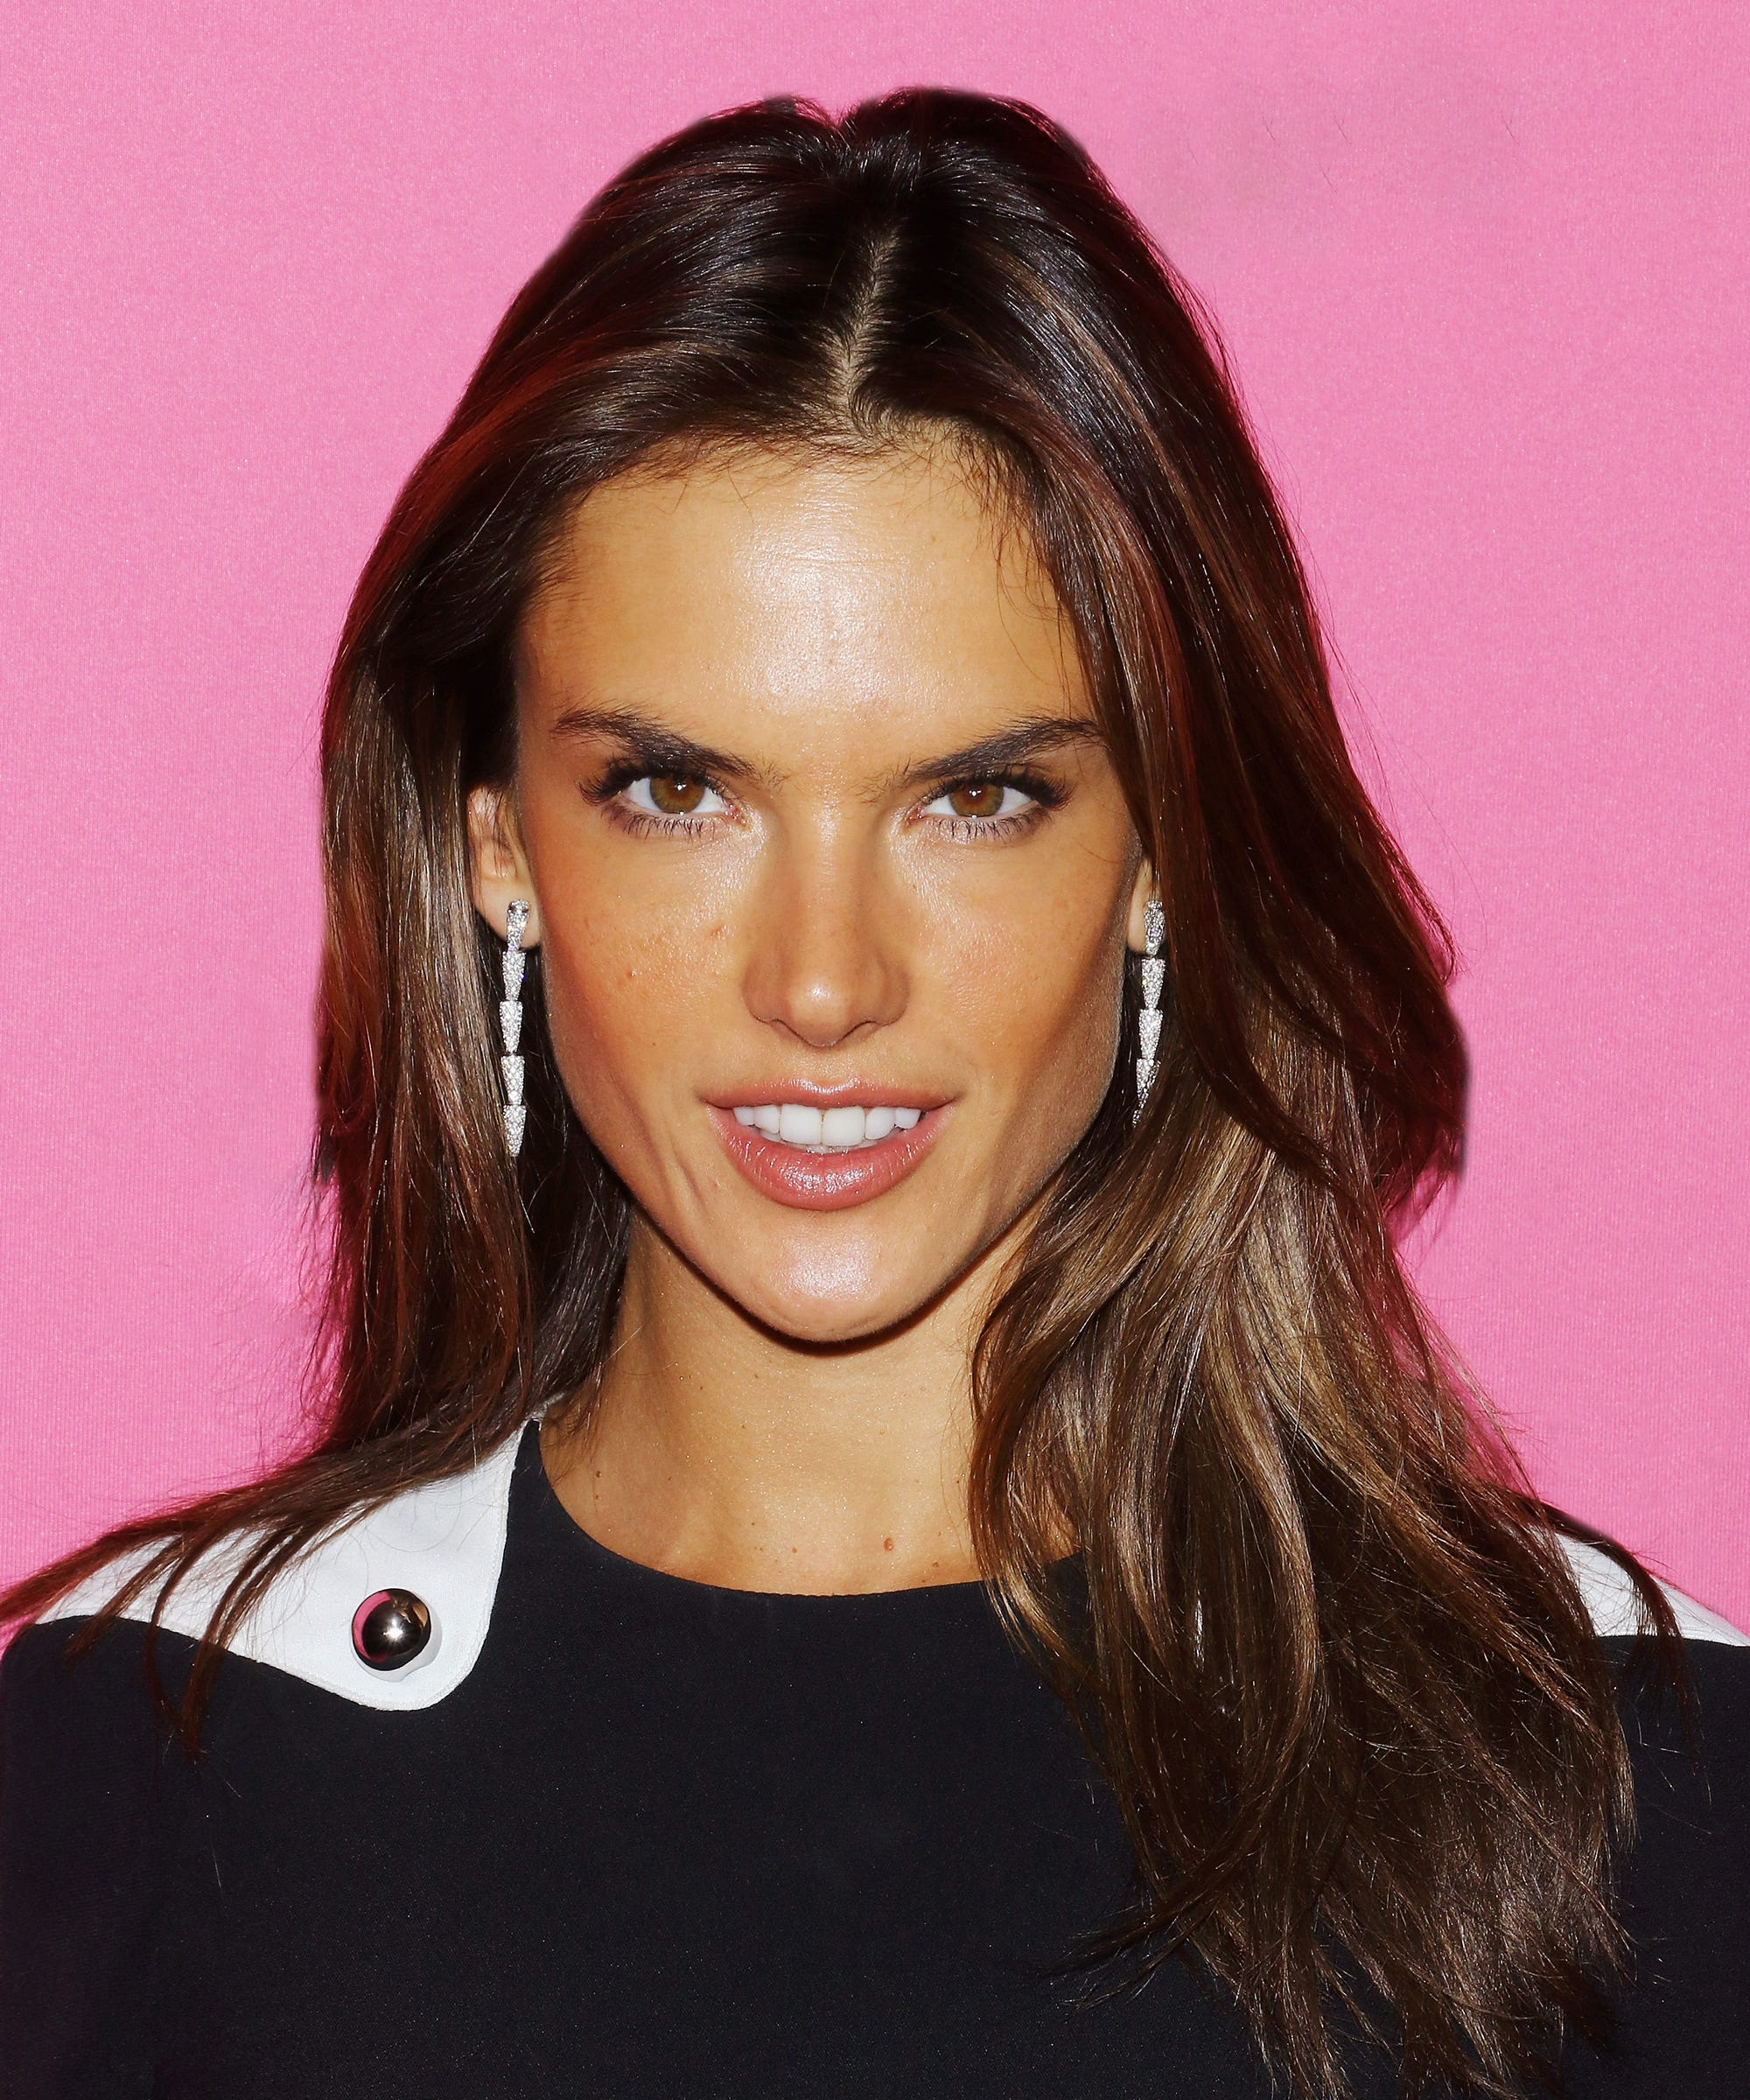 Alessandra Ambrosio's New Haircut Is Giving Us Bob Envy